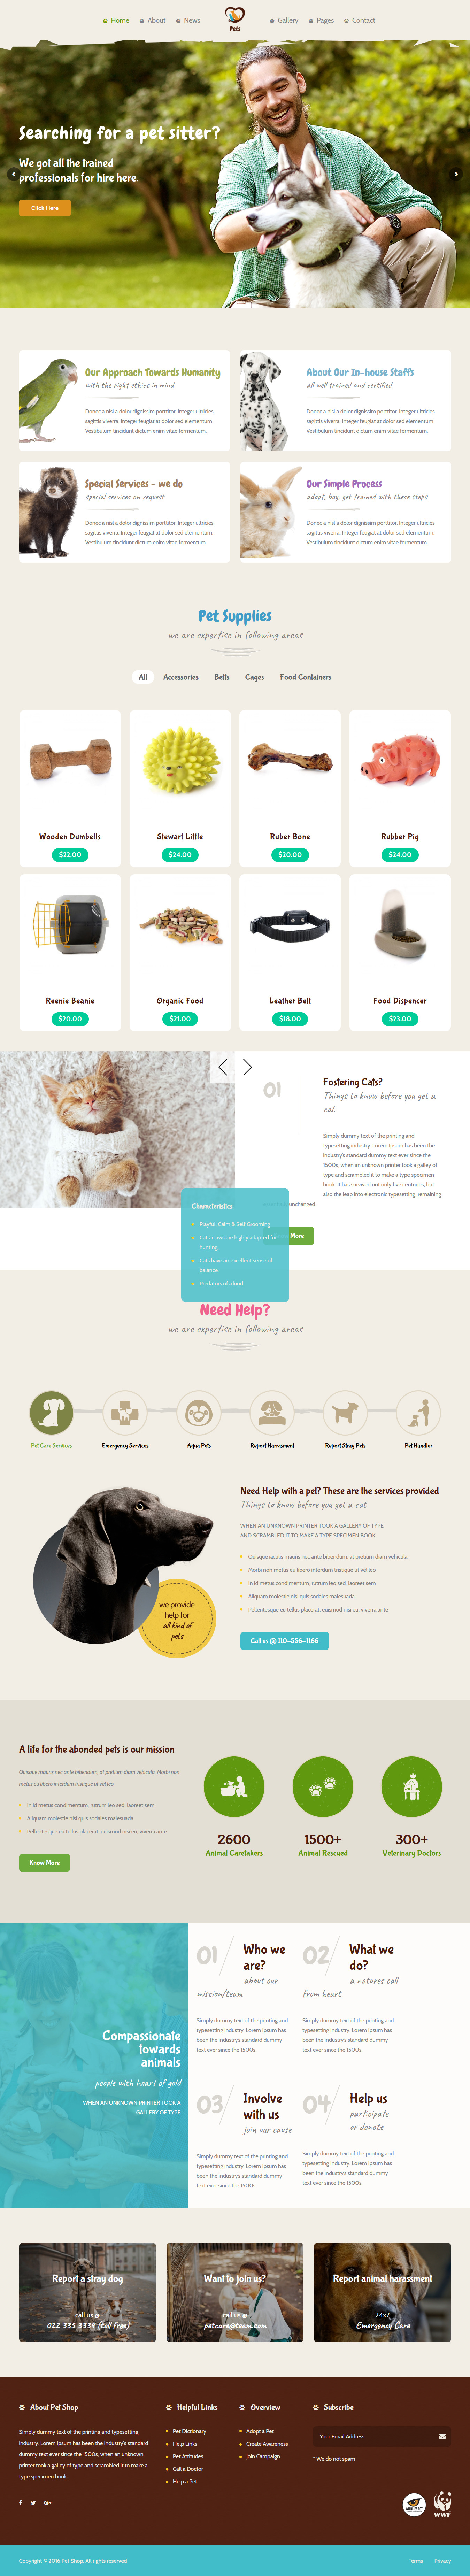 Pet World - Best Premium Animal and Pet WordPress Theme